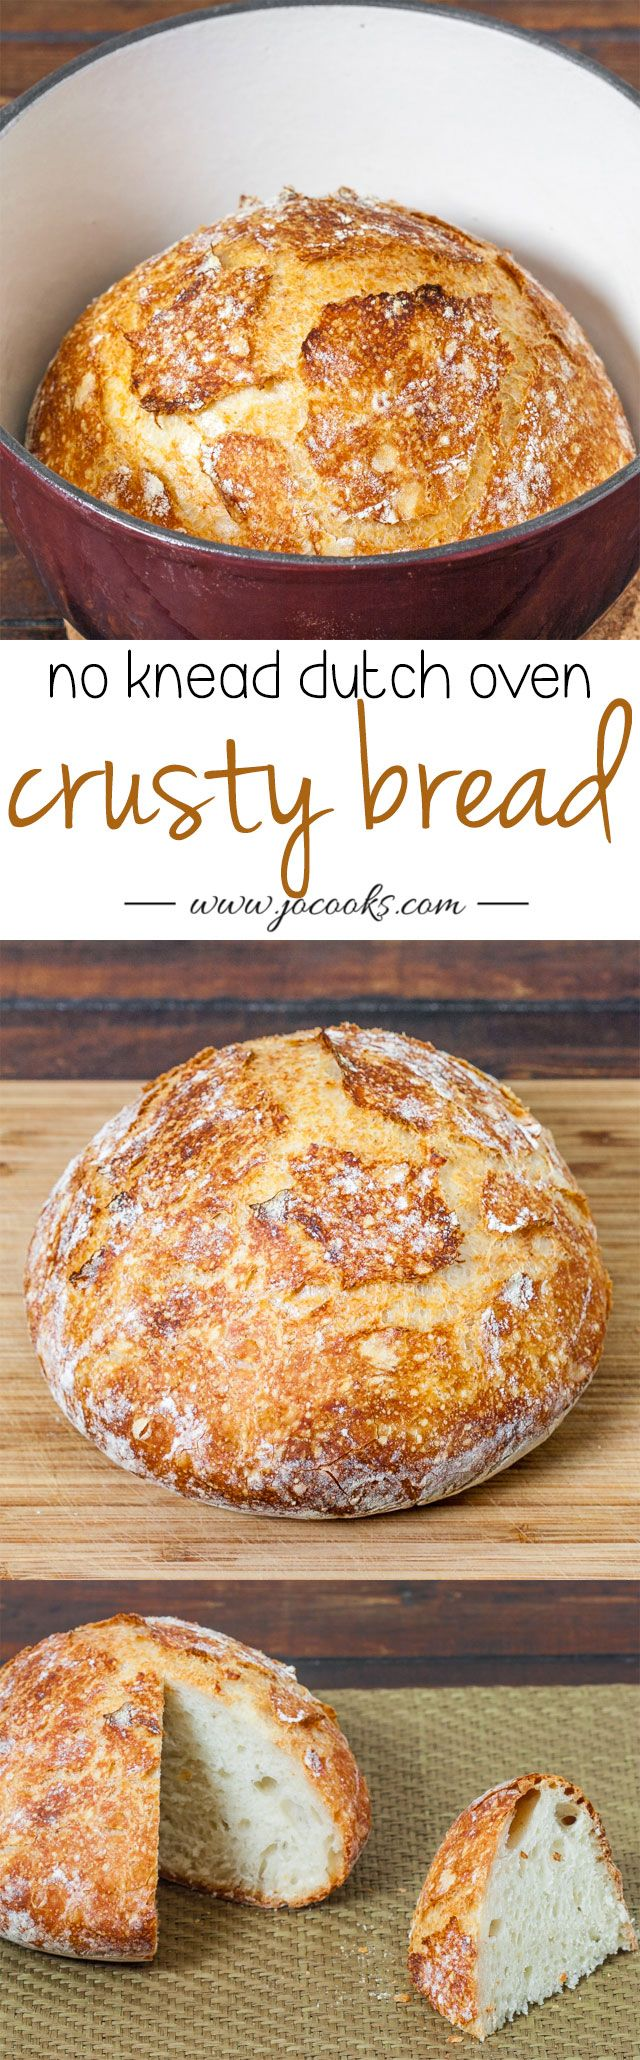 Crusty Bread – bake this easy to make bread in a cast iron pot and you have…